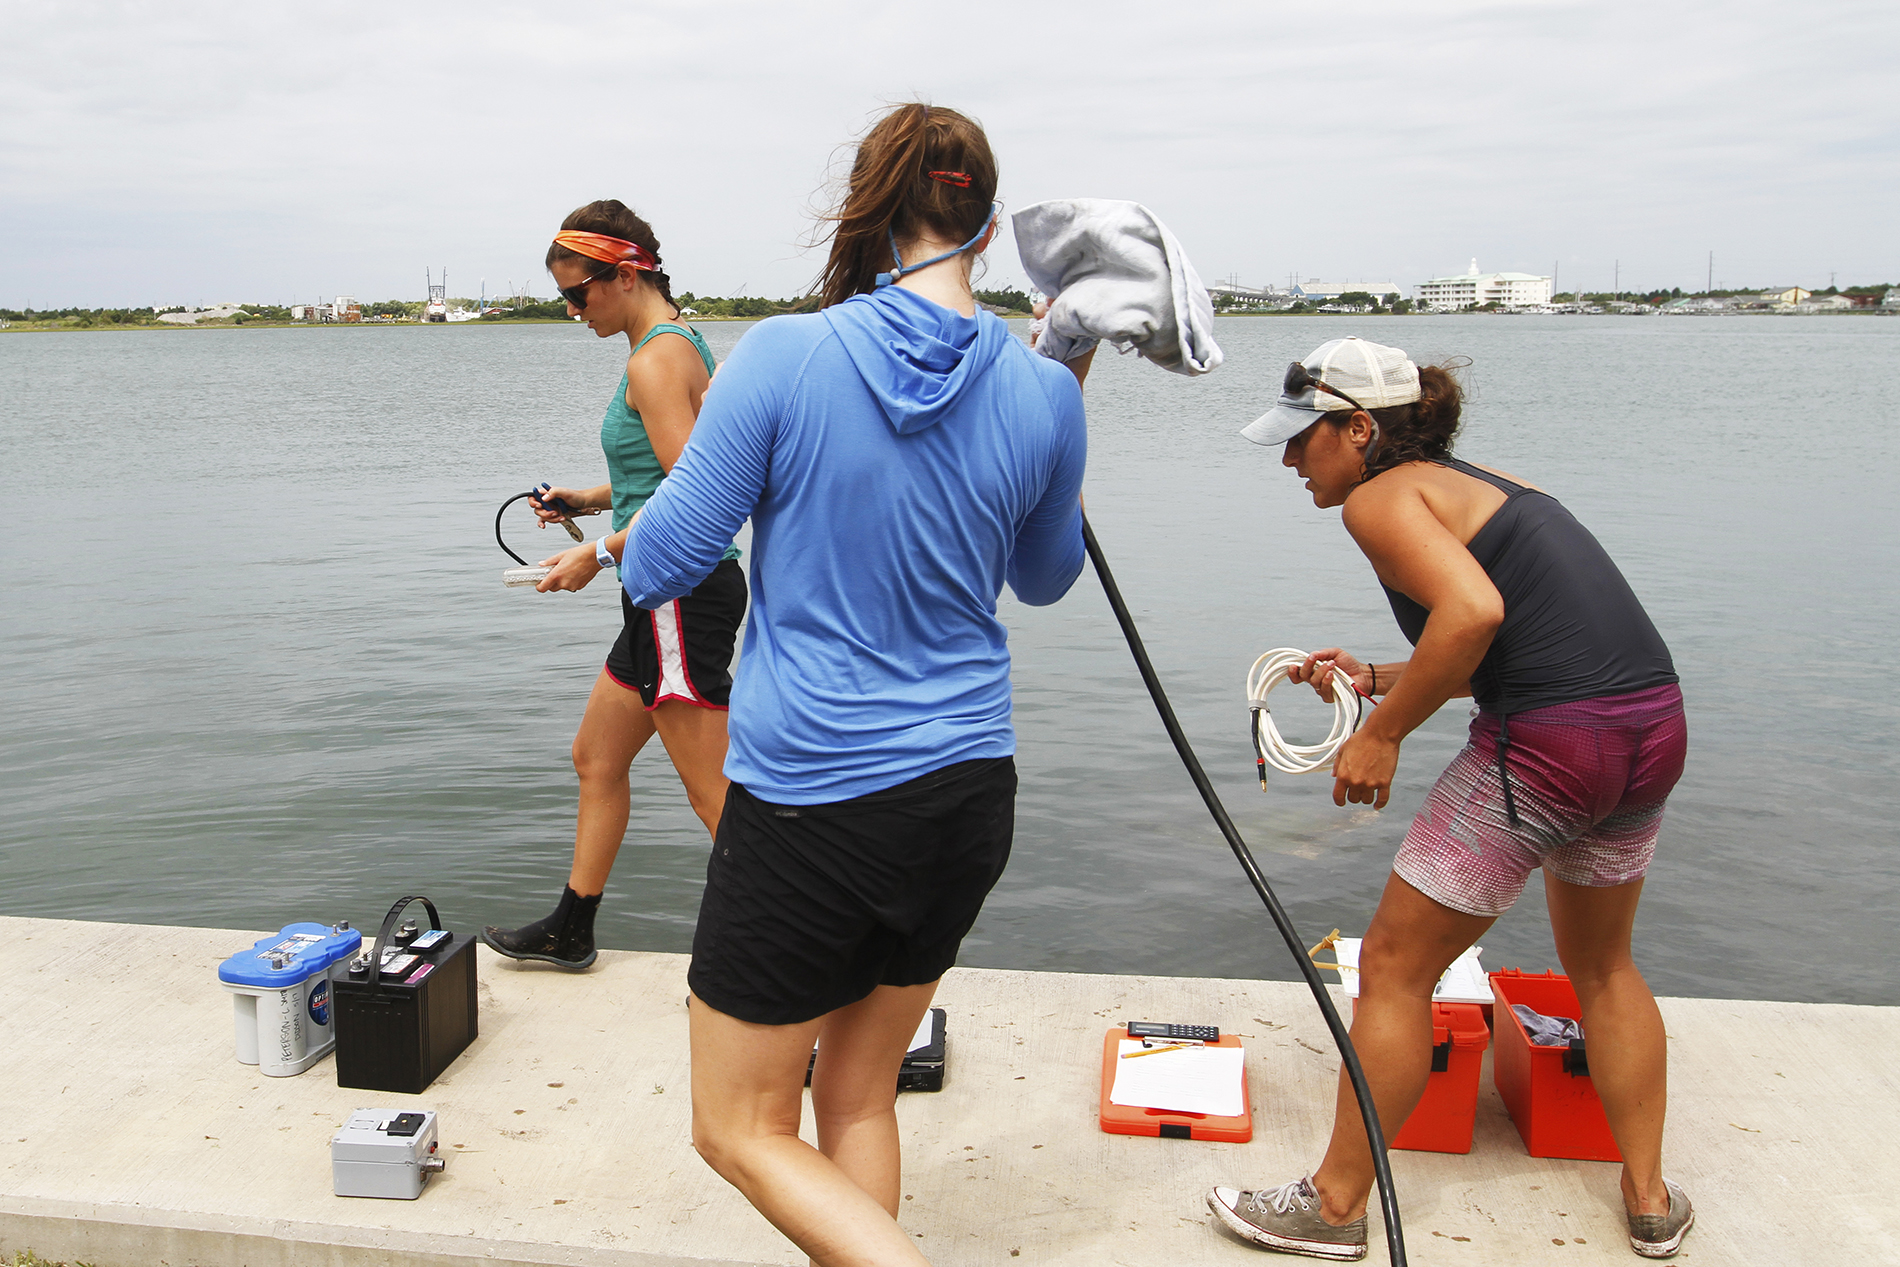 Like a well-oiled machine, Gaesser, Paxton, and Smith efficiently unload their gear from the truck and begin setting up for their second sample site.